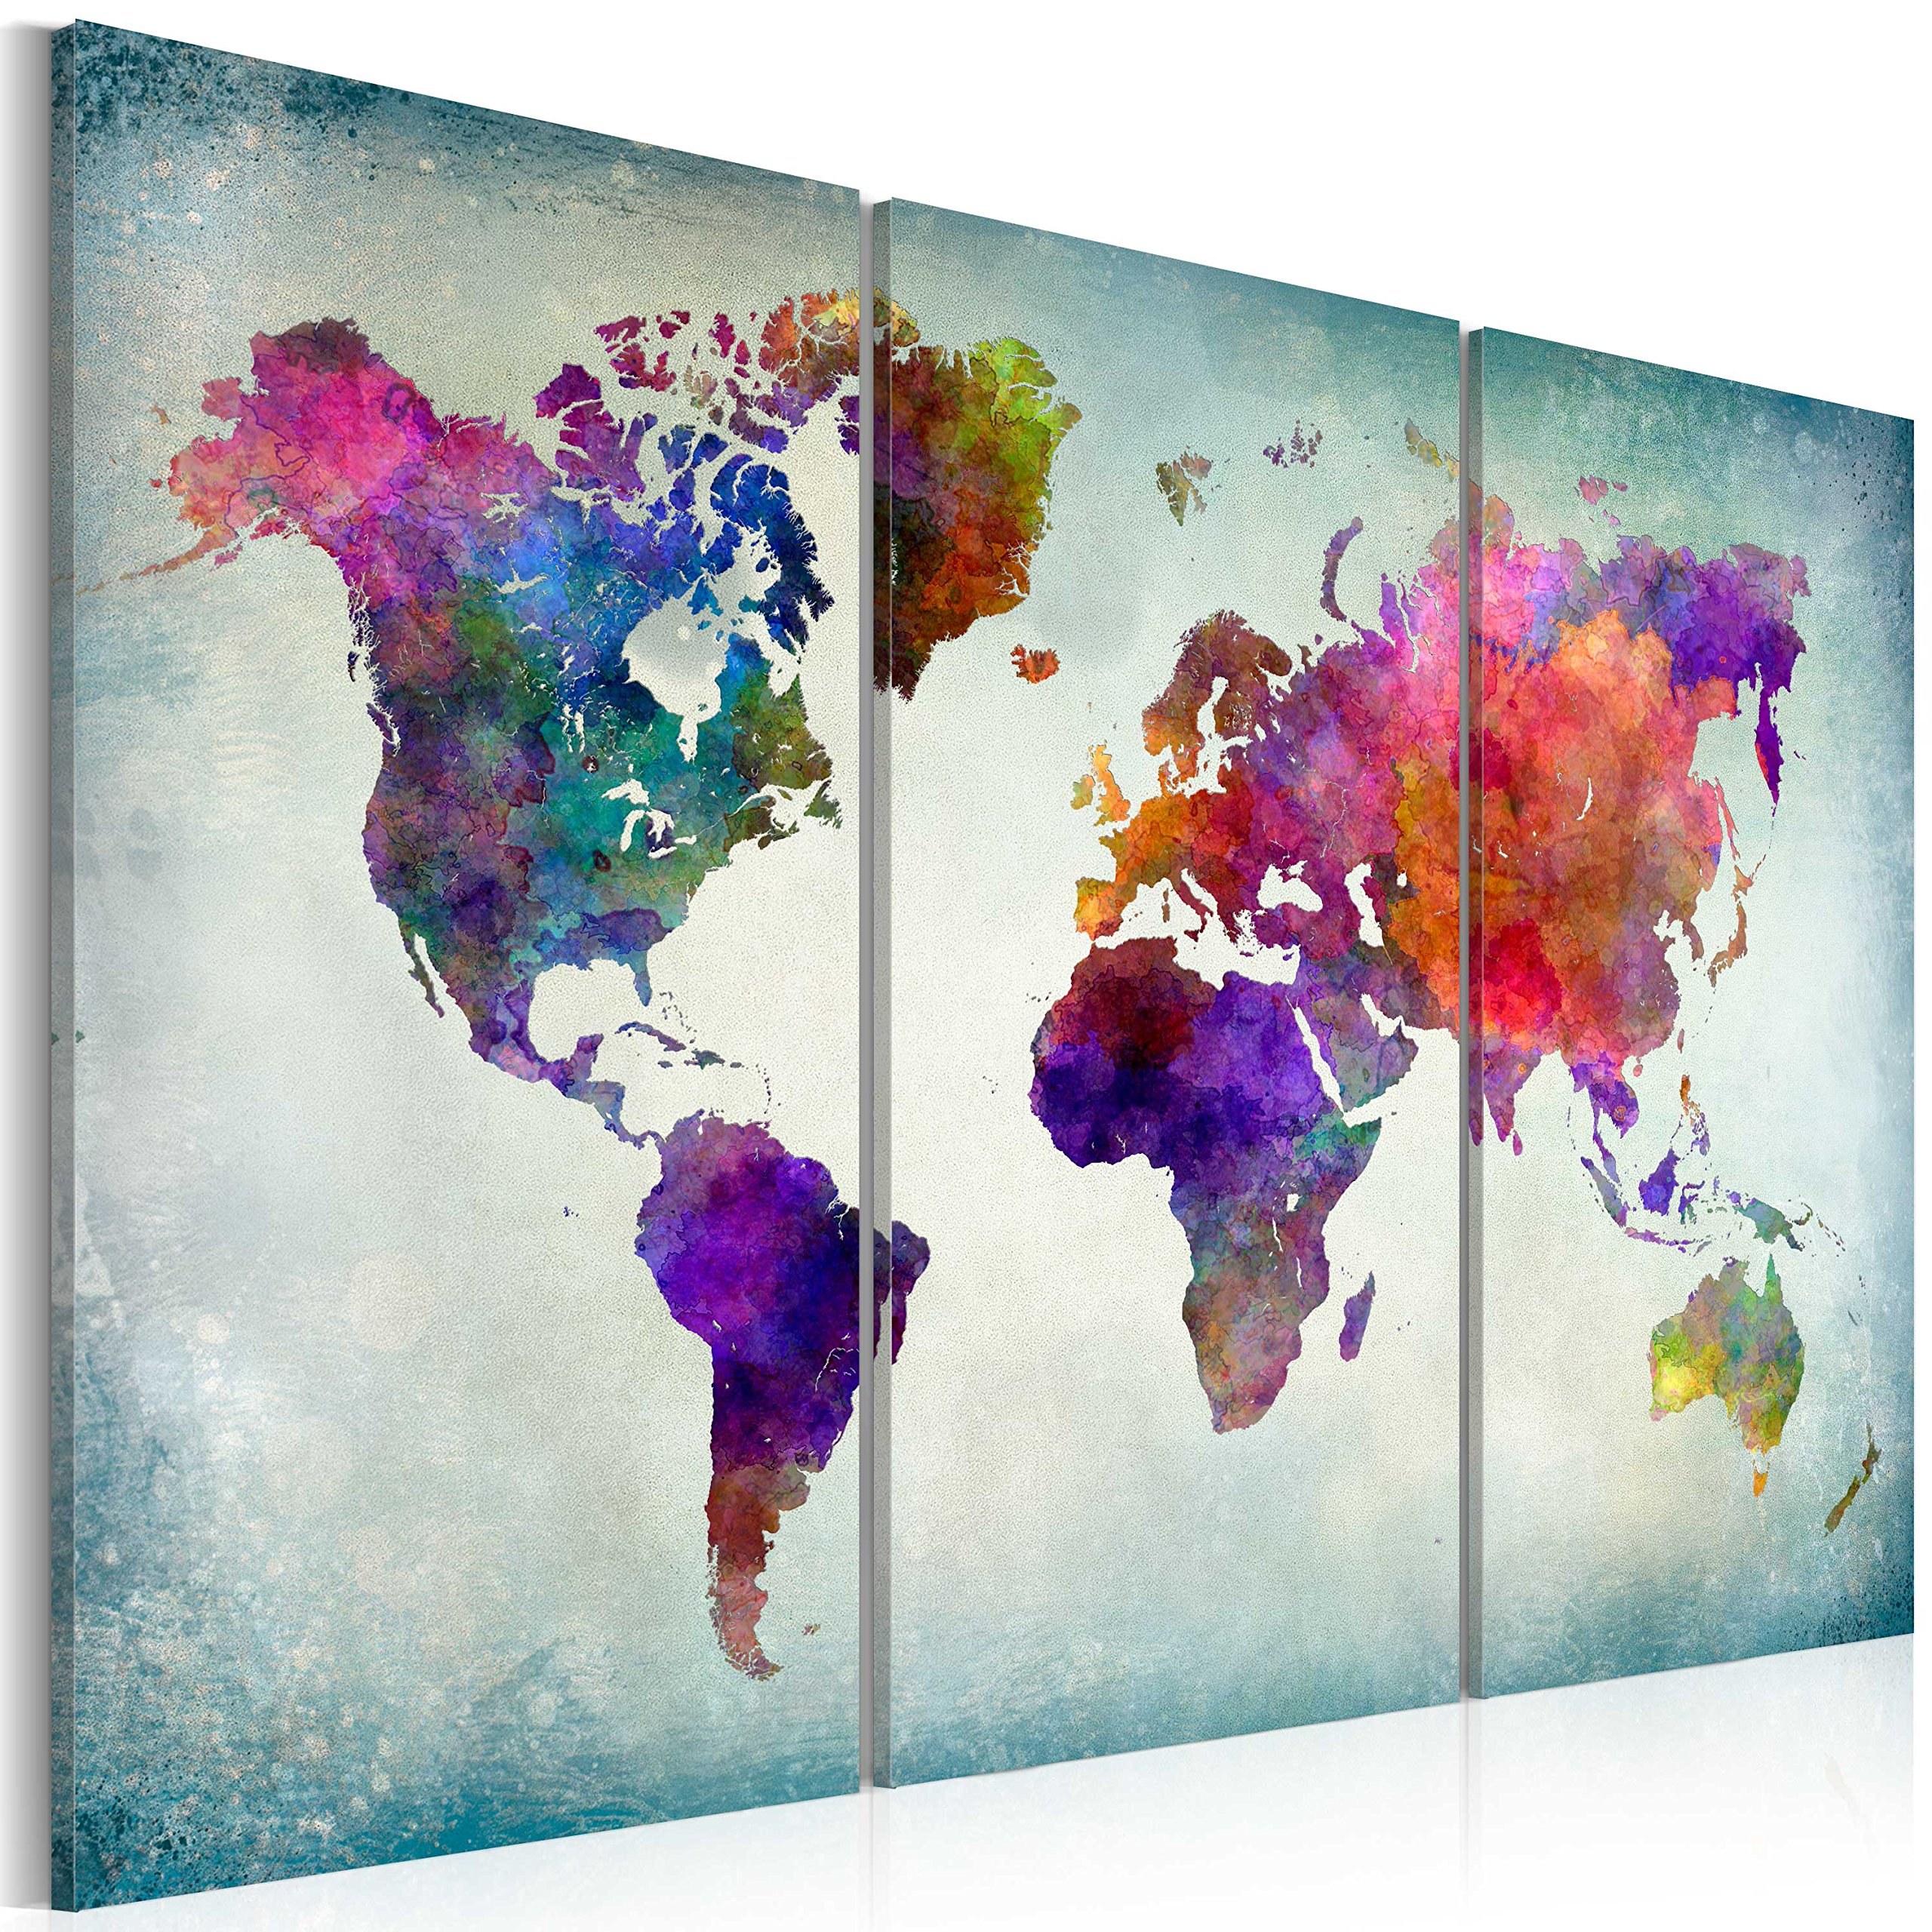 World map wall art amazon murando image 120x80 cm image printed on non woven canvas wall art print gumiabroncs Gallery